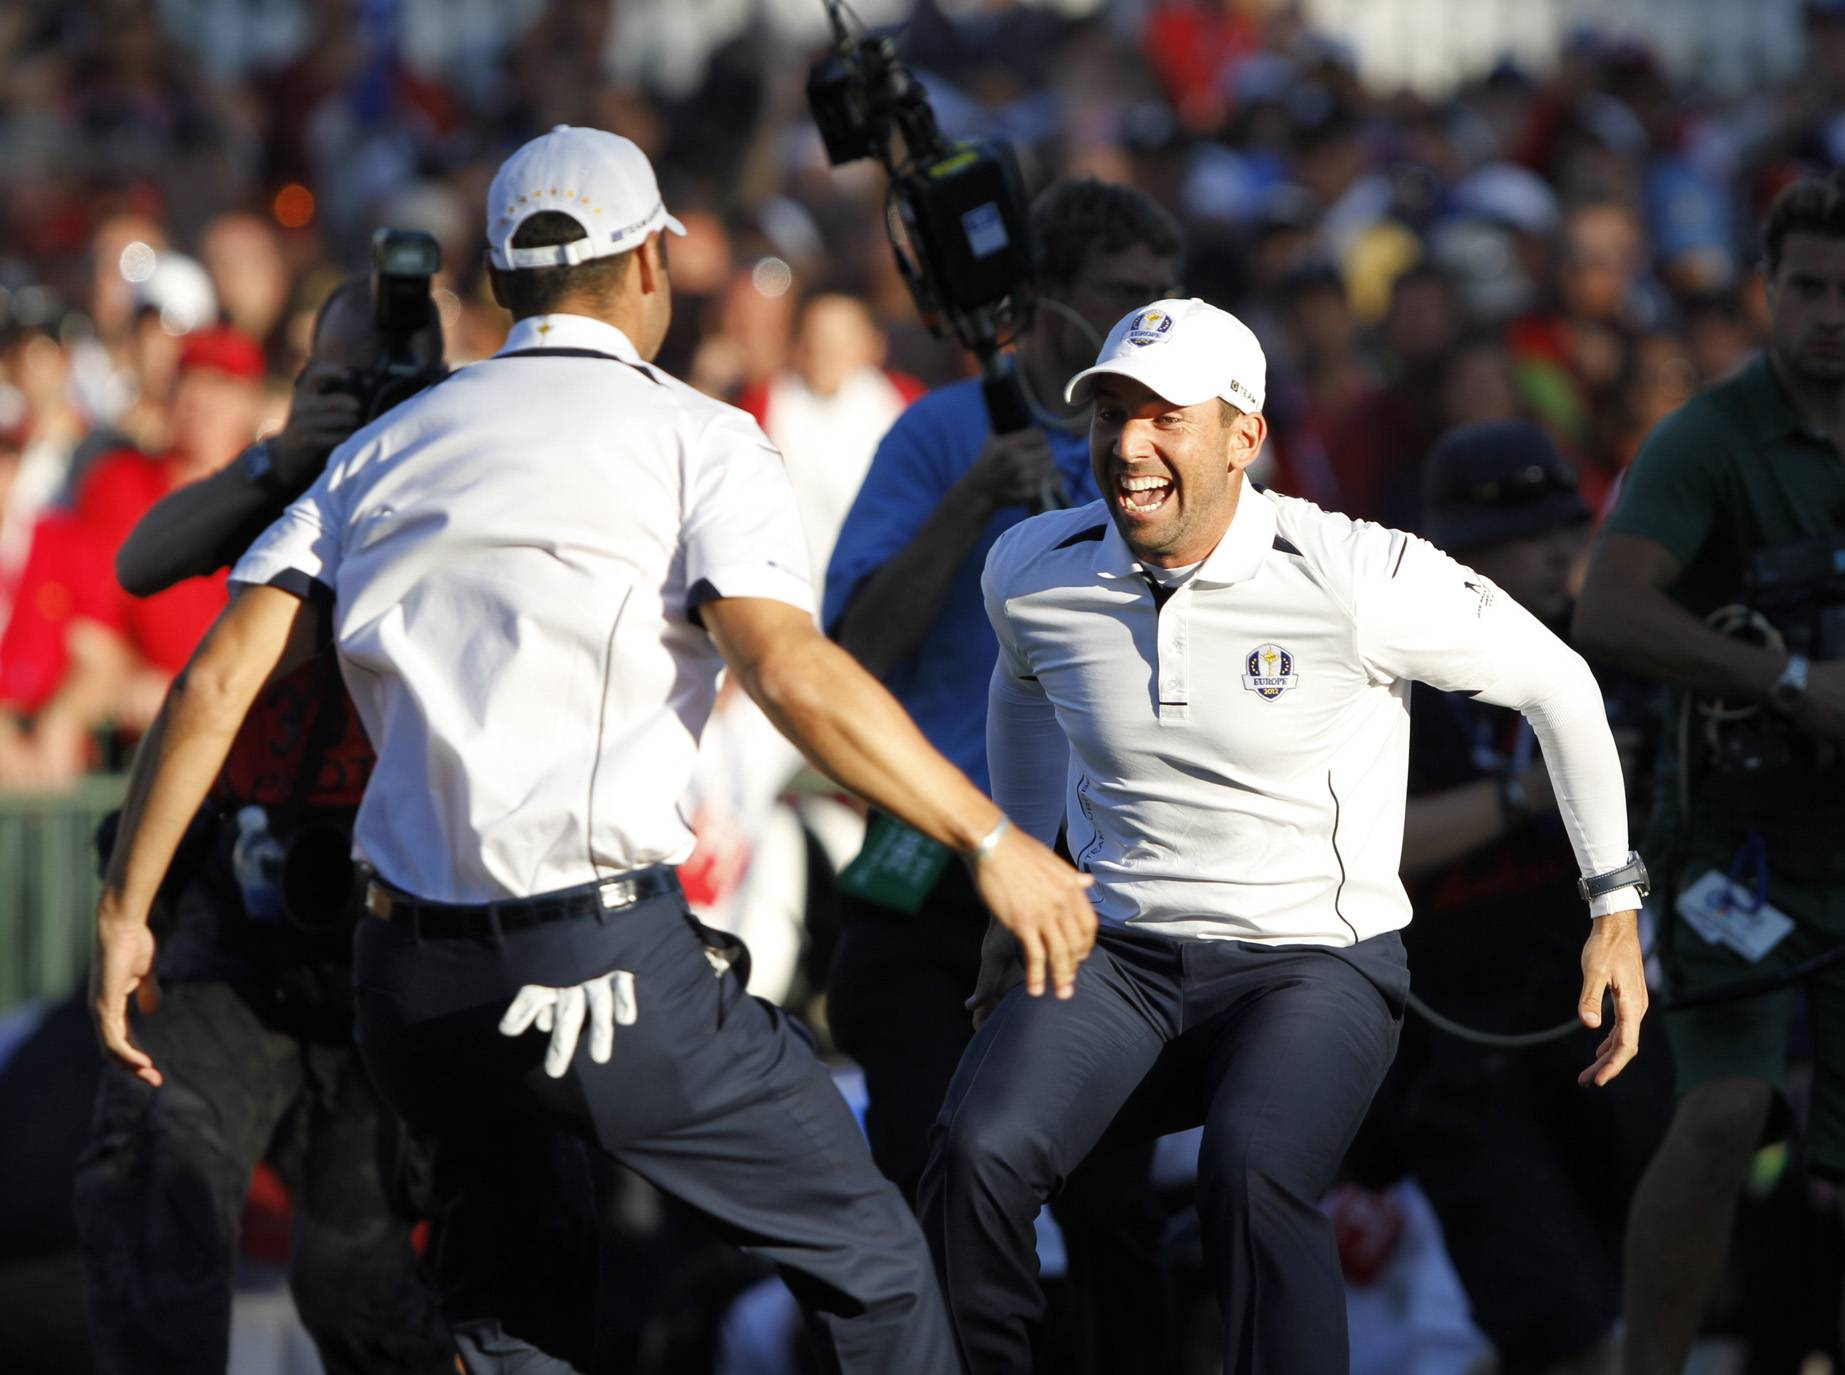 Sergio Garcia, right, and Martin Kaymer celebrate after Kaymer sank the put that sealed the Ryder Cup victory Sunday during the final day of the 2012 Ryder Cup at Medinah Country Club.